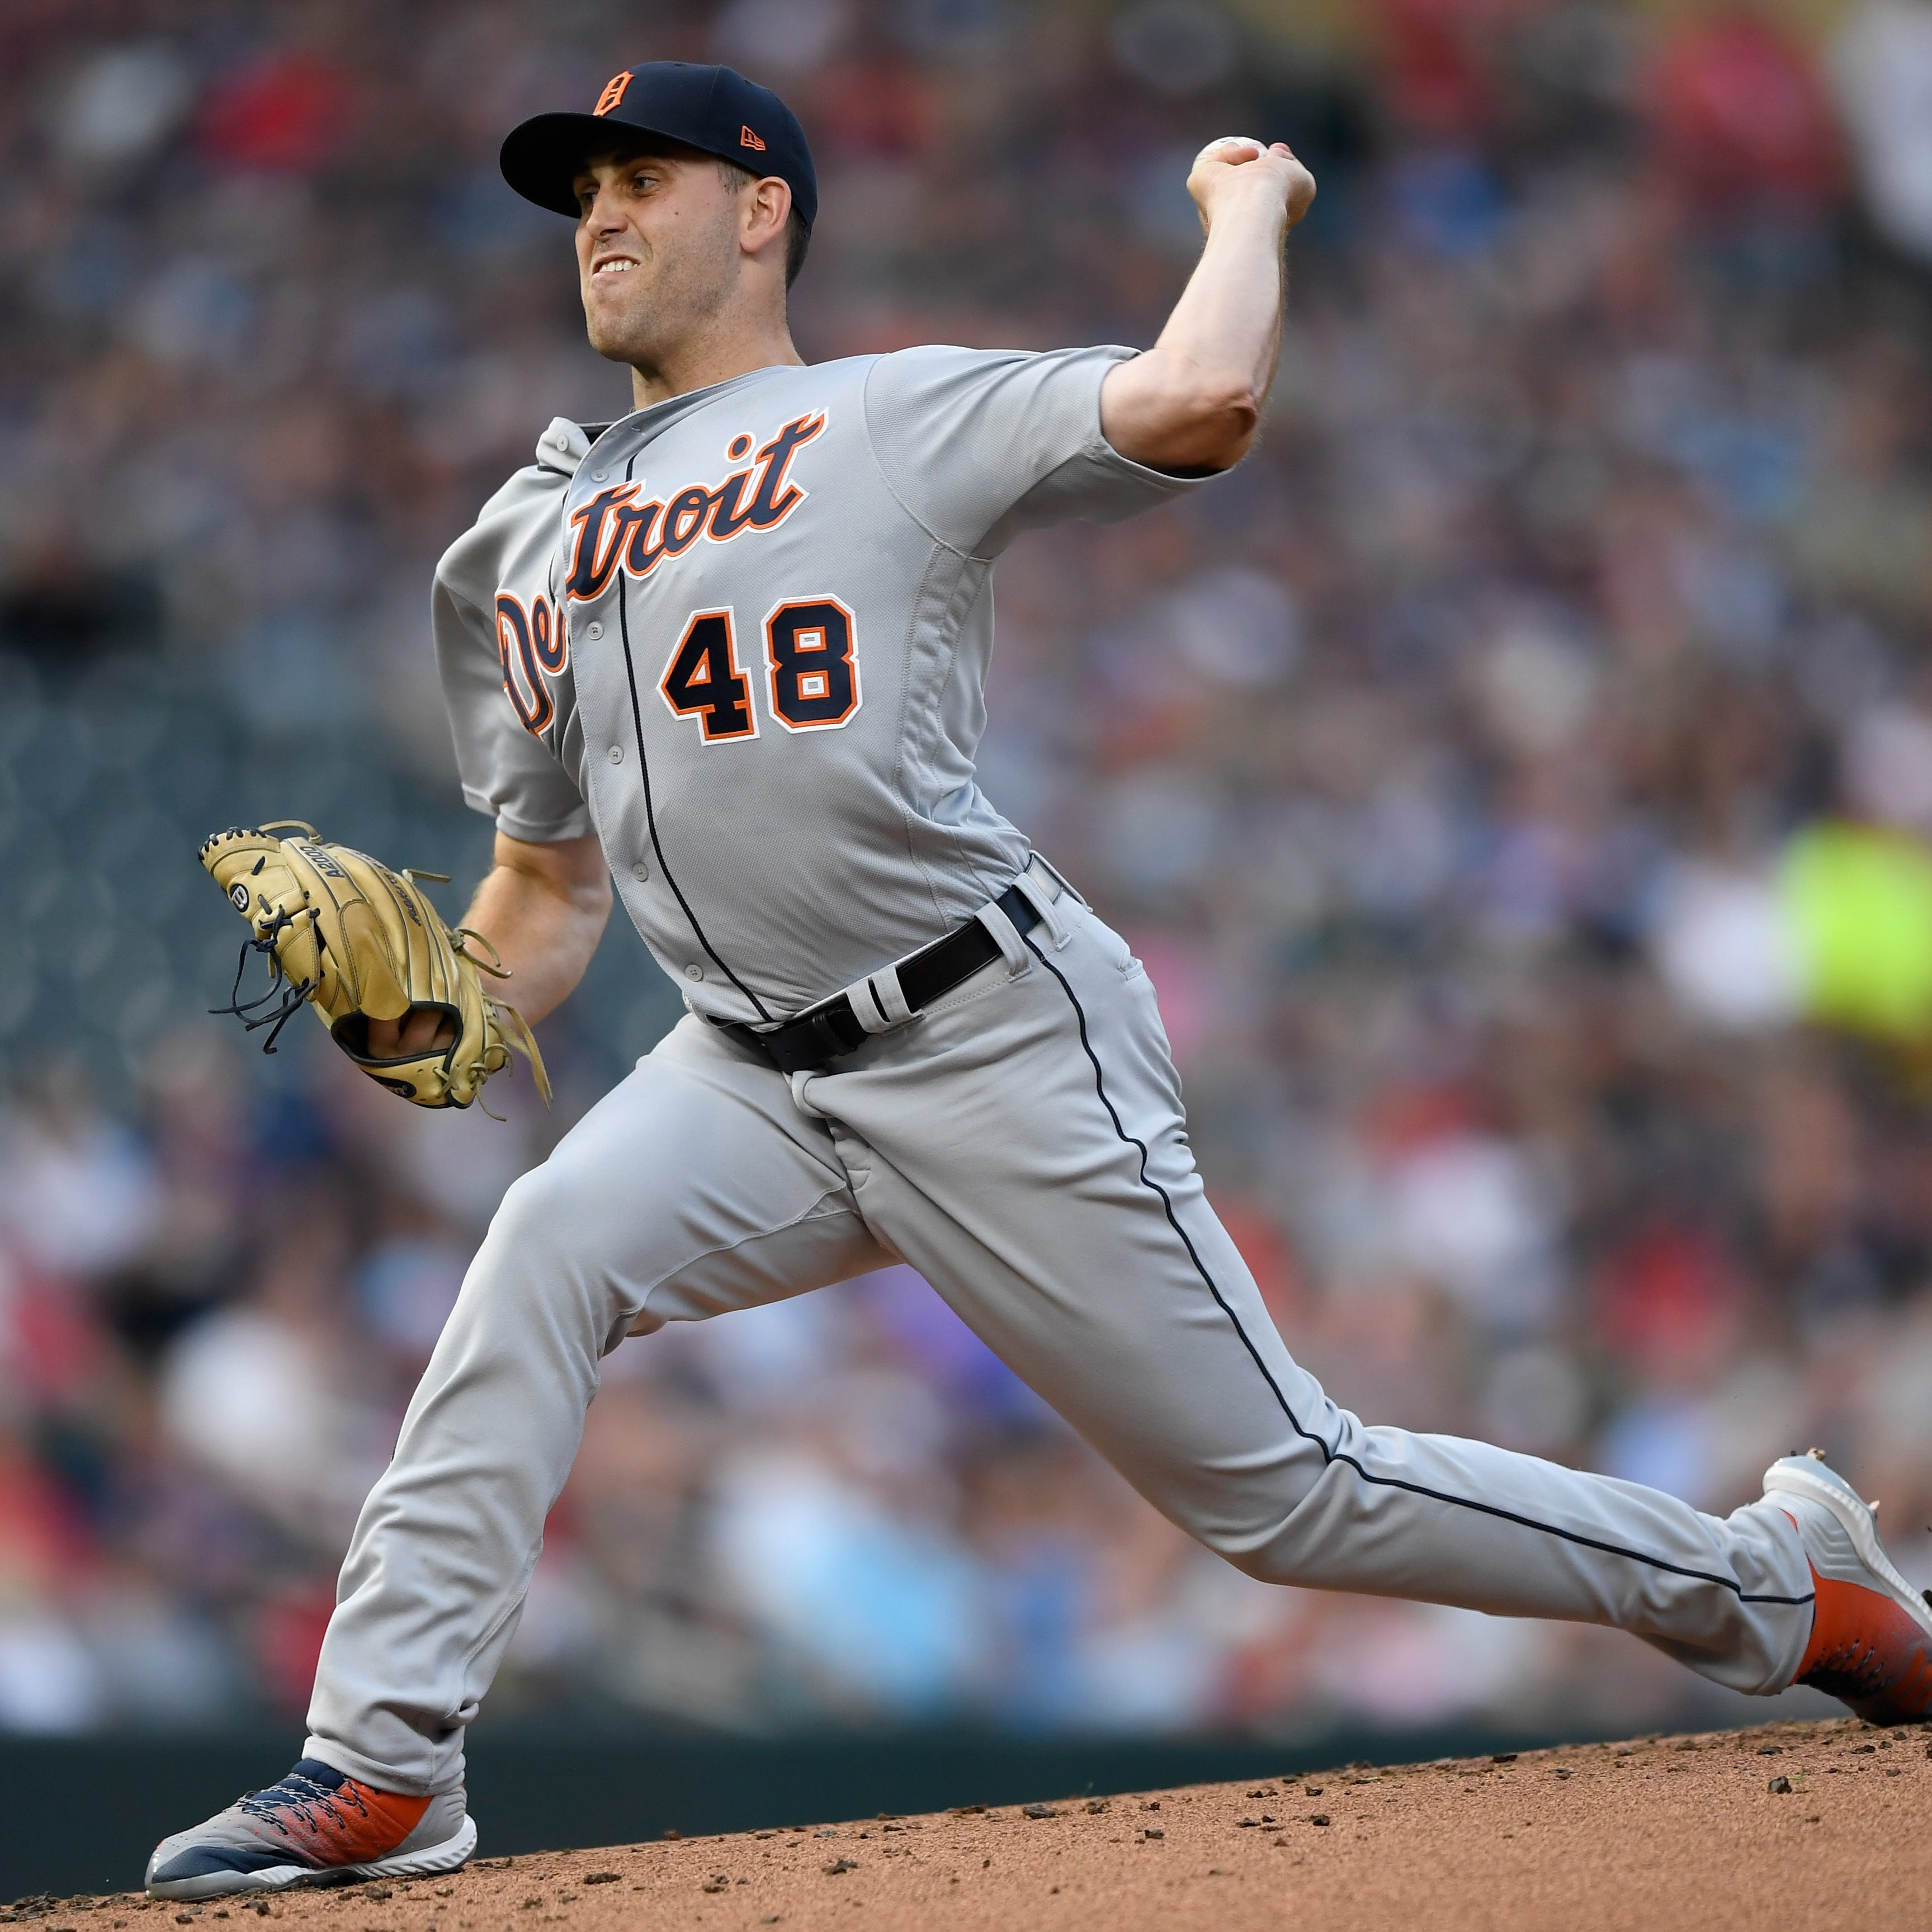 Detroit Tigers lose to Minnesota Twins, 5-4